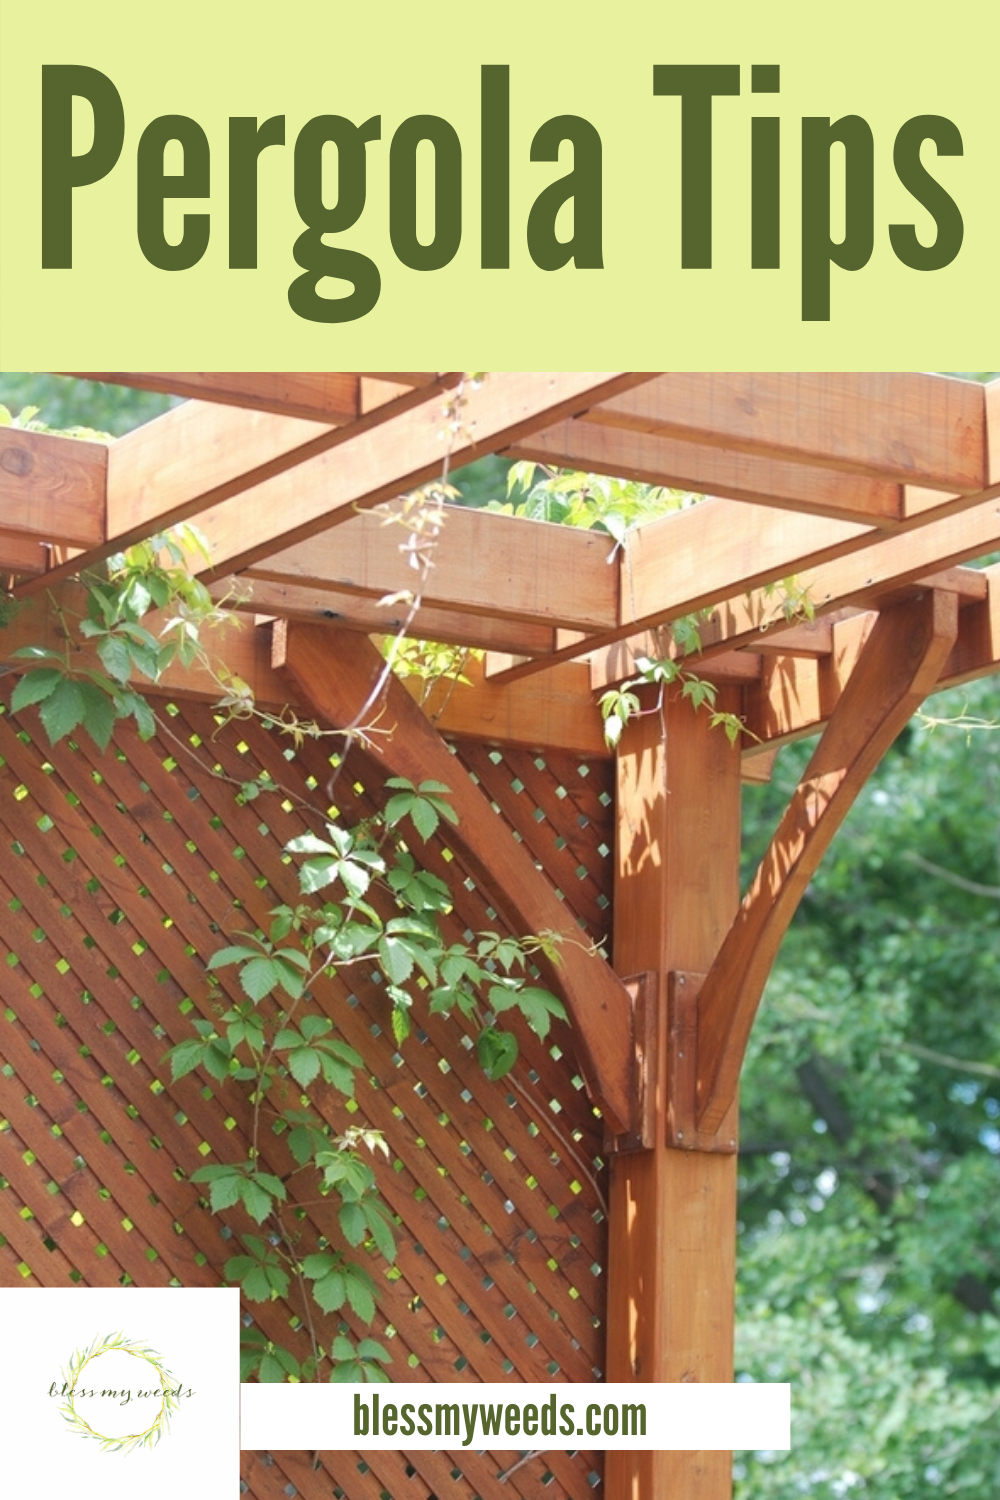 Save money by building your own pergola. These pergola building tips will take you through each step to make the job easier. Now you just need to decide what style you want. Read on for more info. #pergola #howtobuildapergola #DIYprojects #backyardprojects #blessmyweedsblog